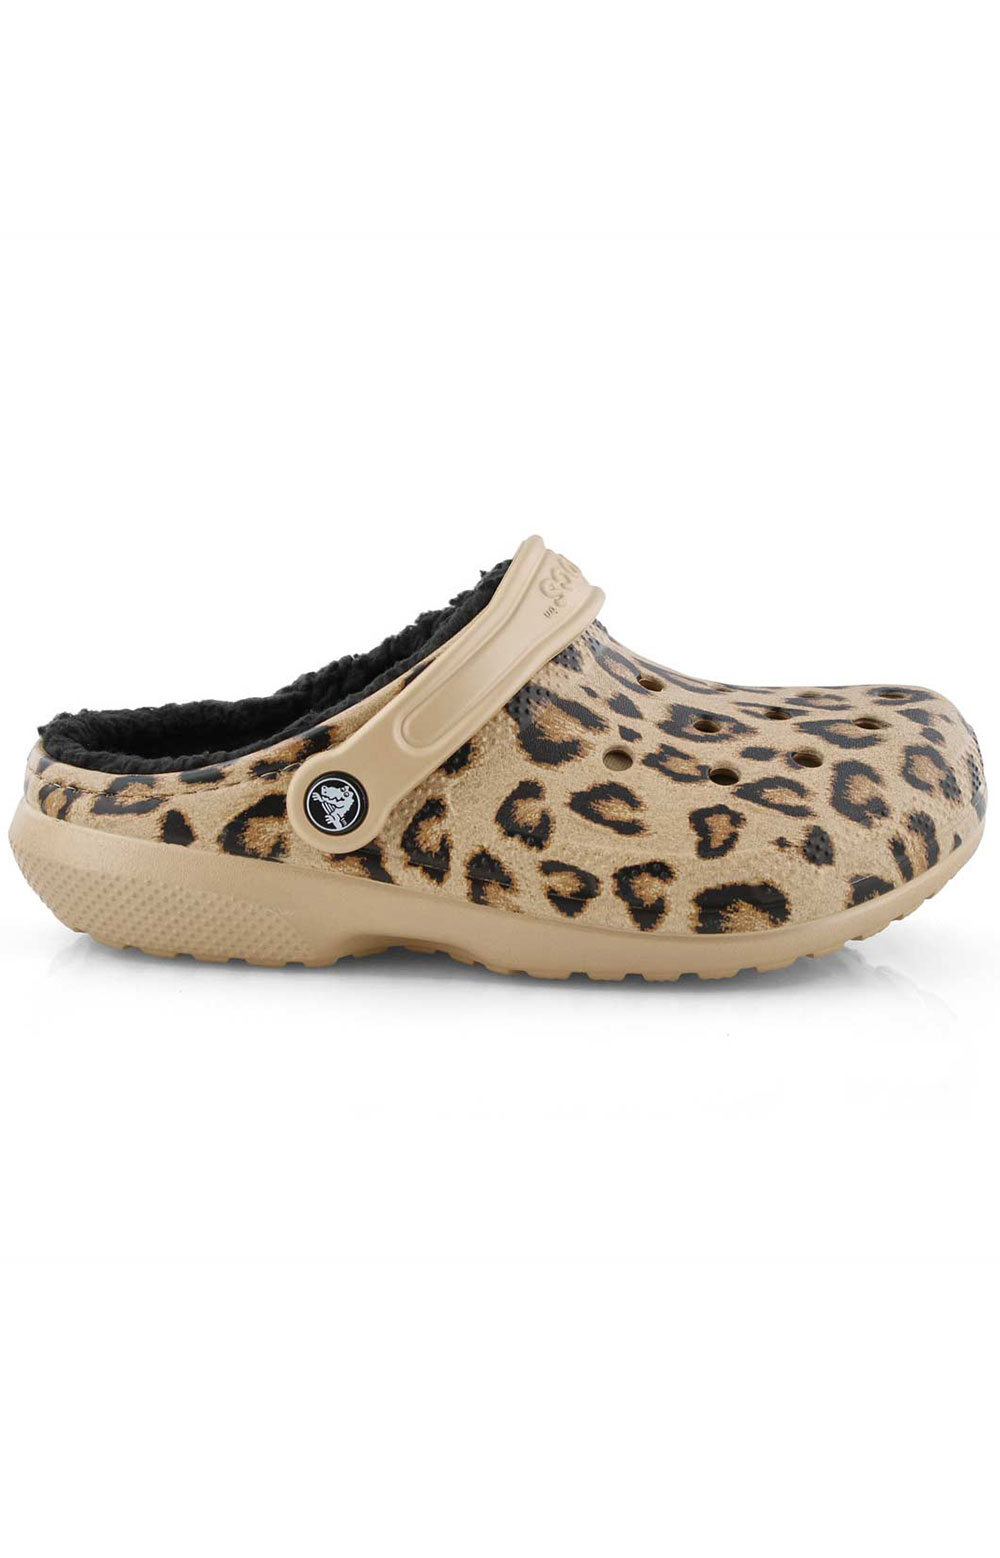 Classic Printed Lined Clog - Leopard/Black 2